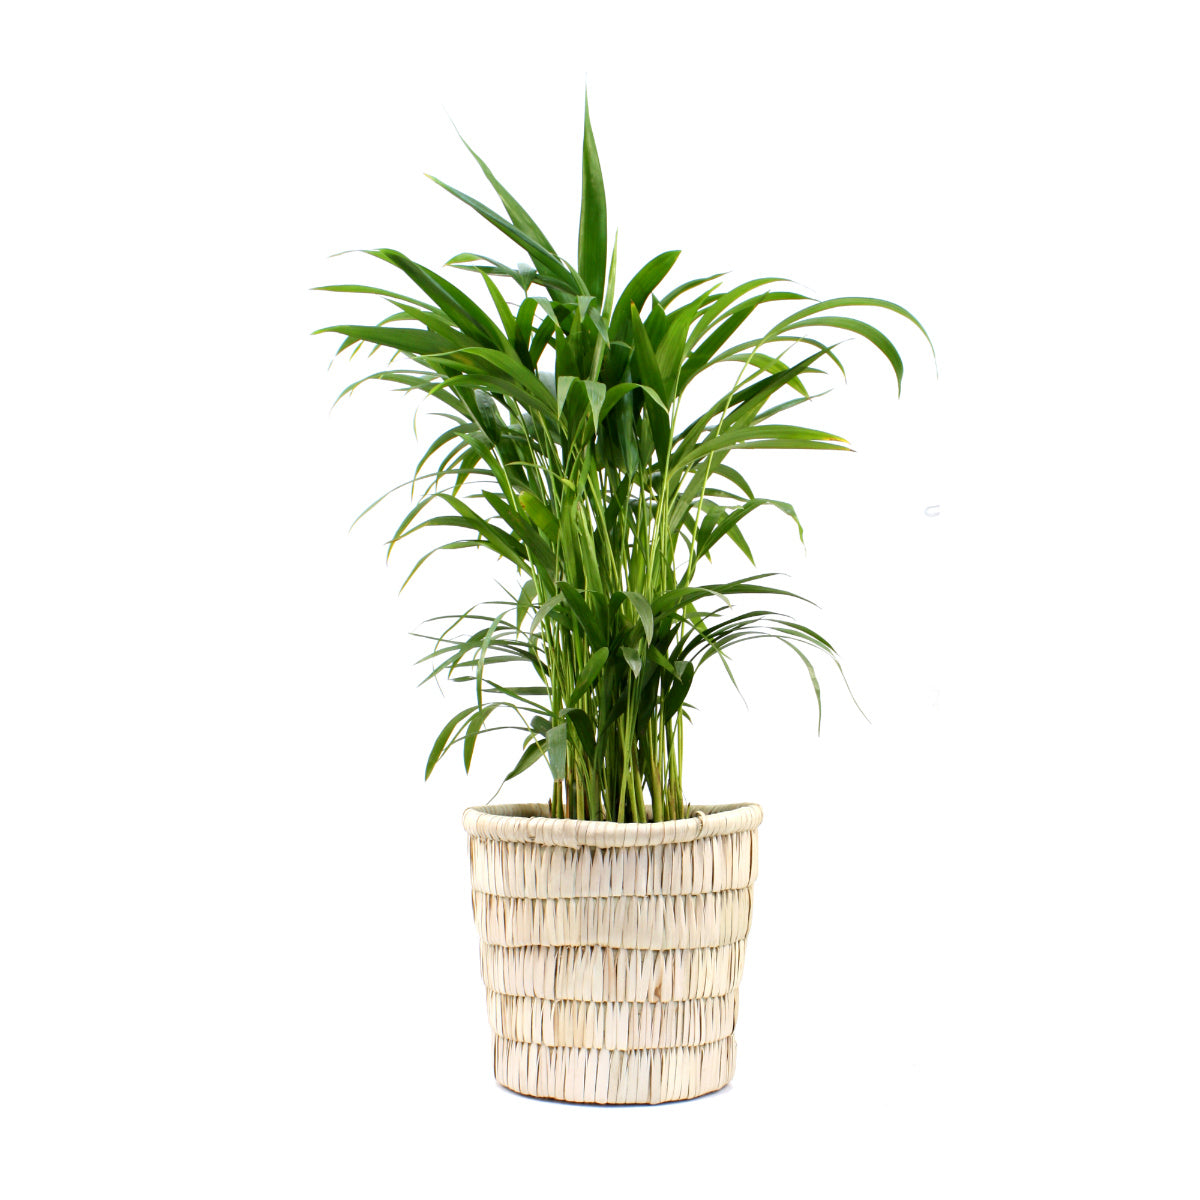 Areca Palm (Dypsis lutescens) in Katondo basket - Bamboo Palm